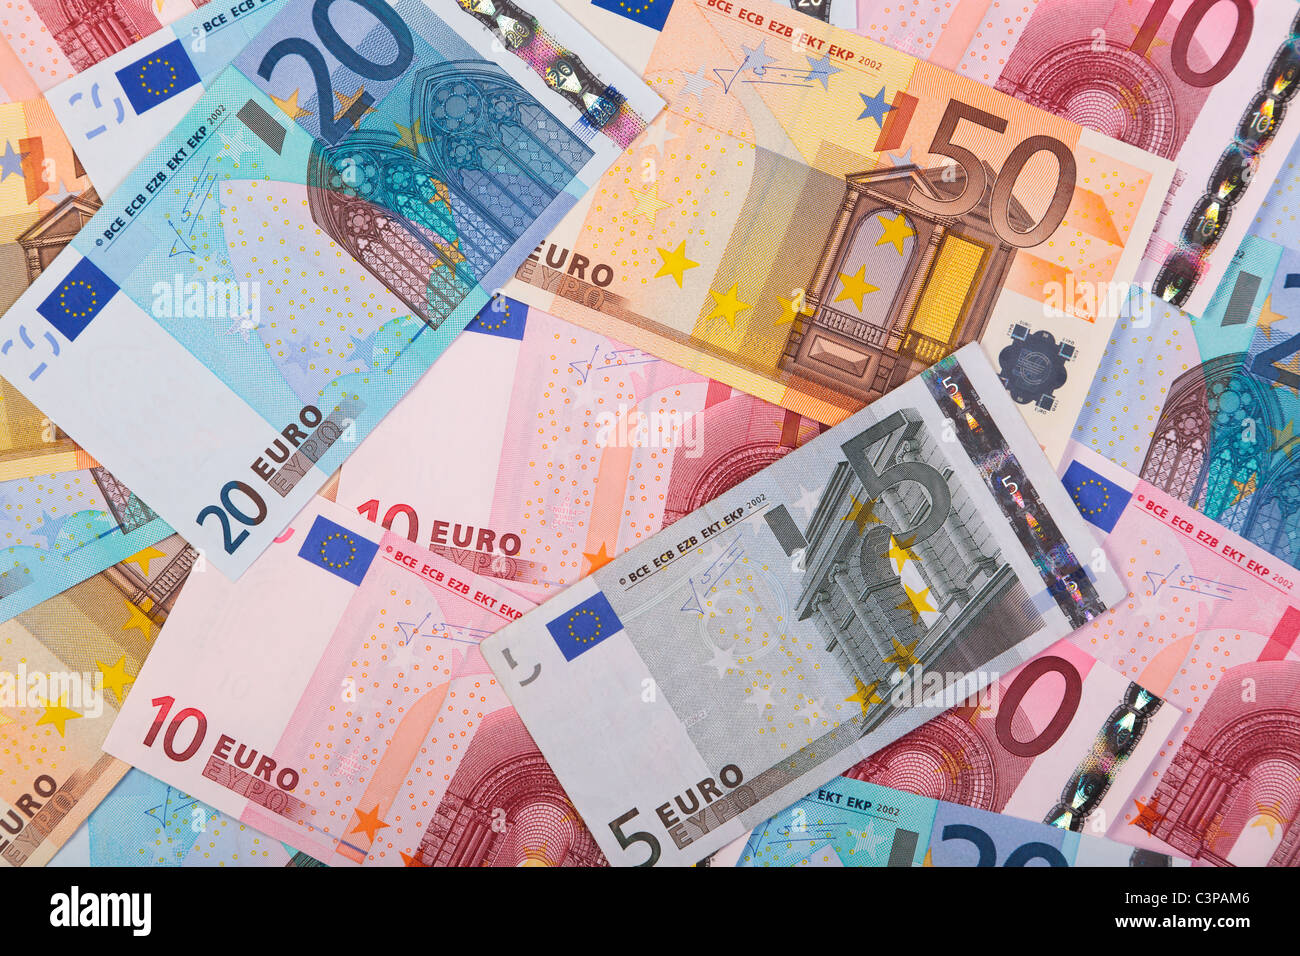 Photo of overlapping Euro banknotes in various denominations. - Stock Image